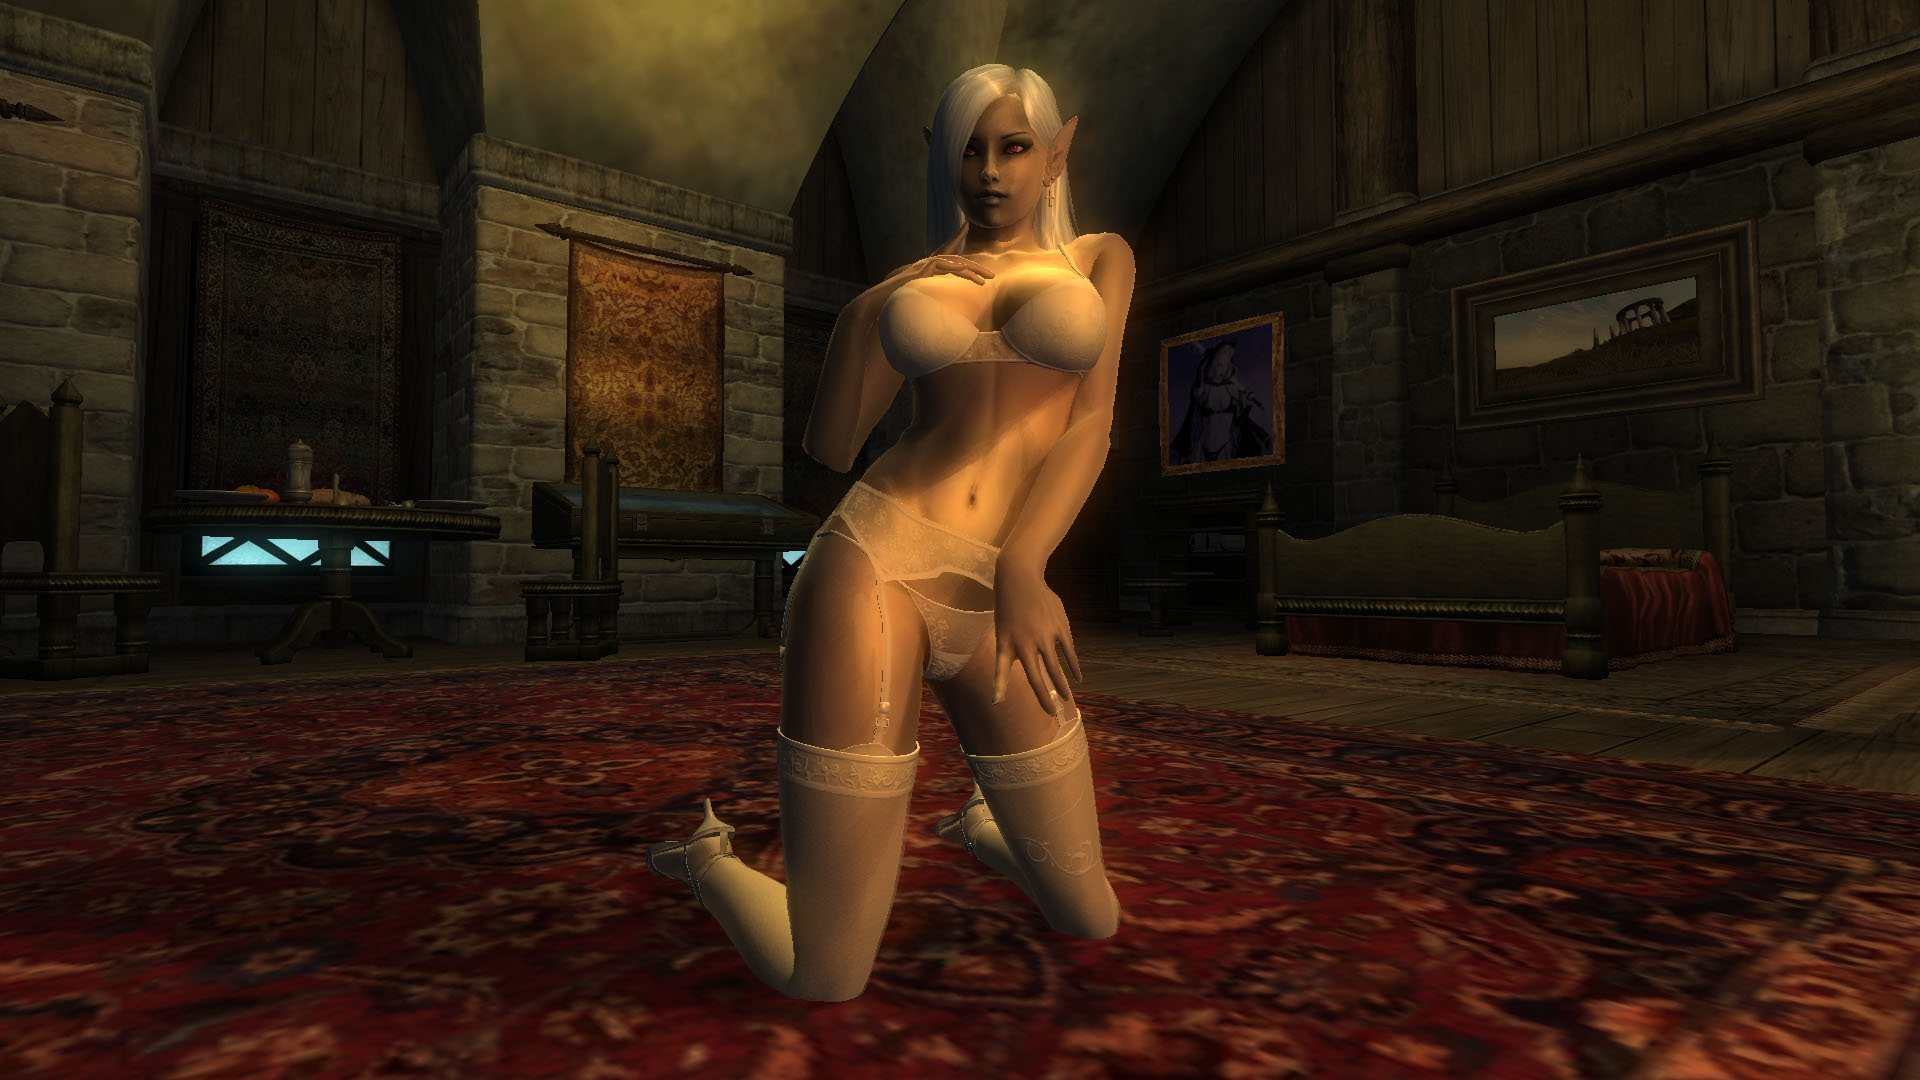 Eyecandys nude mod download porn picture